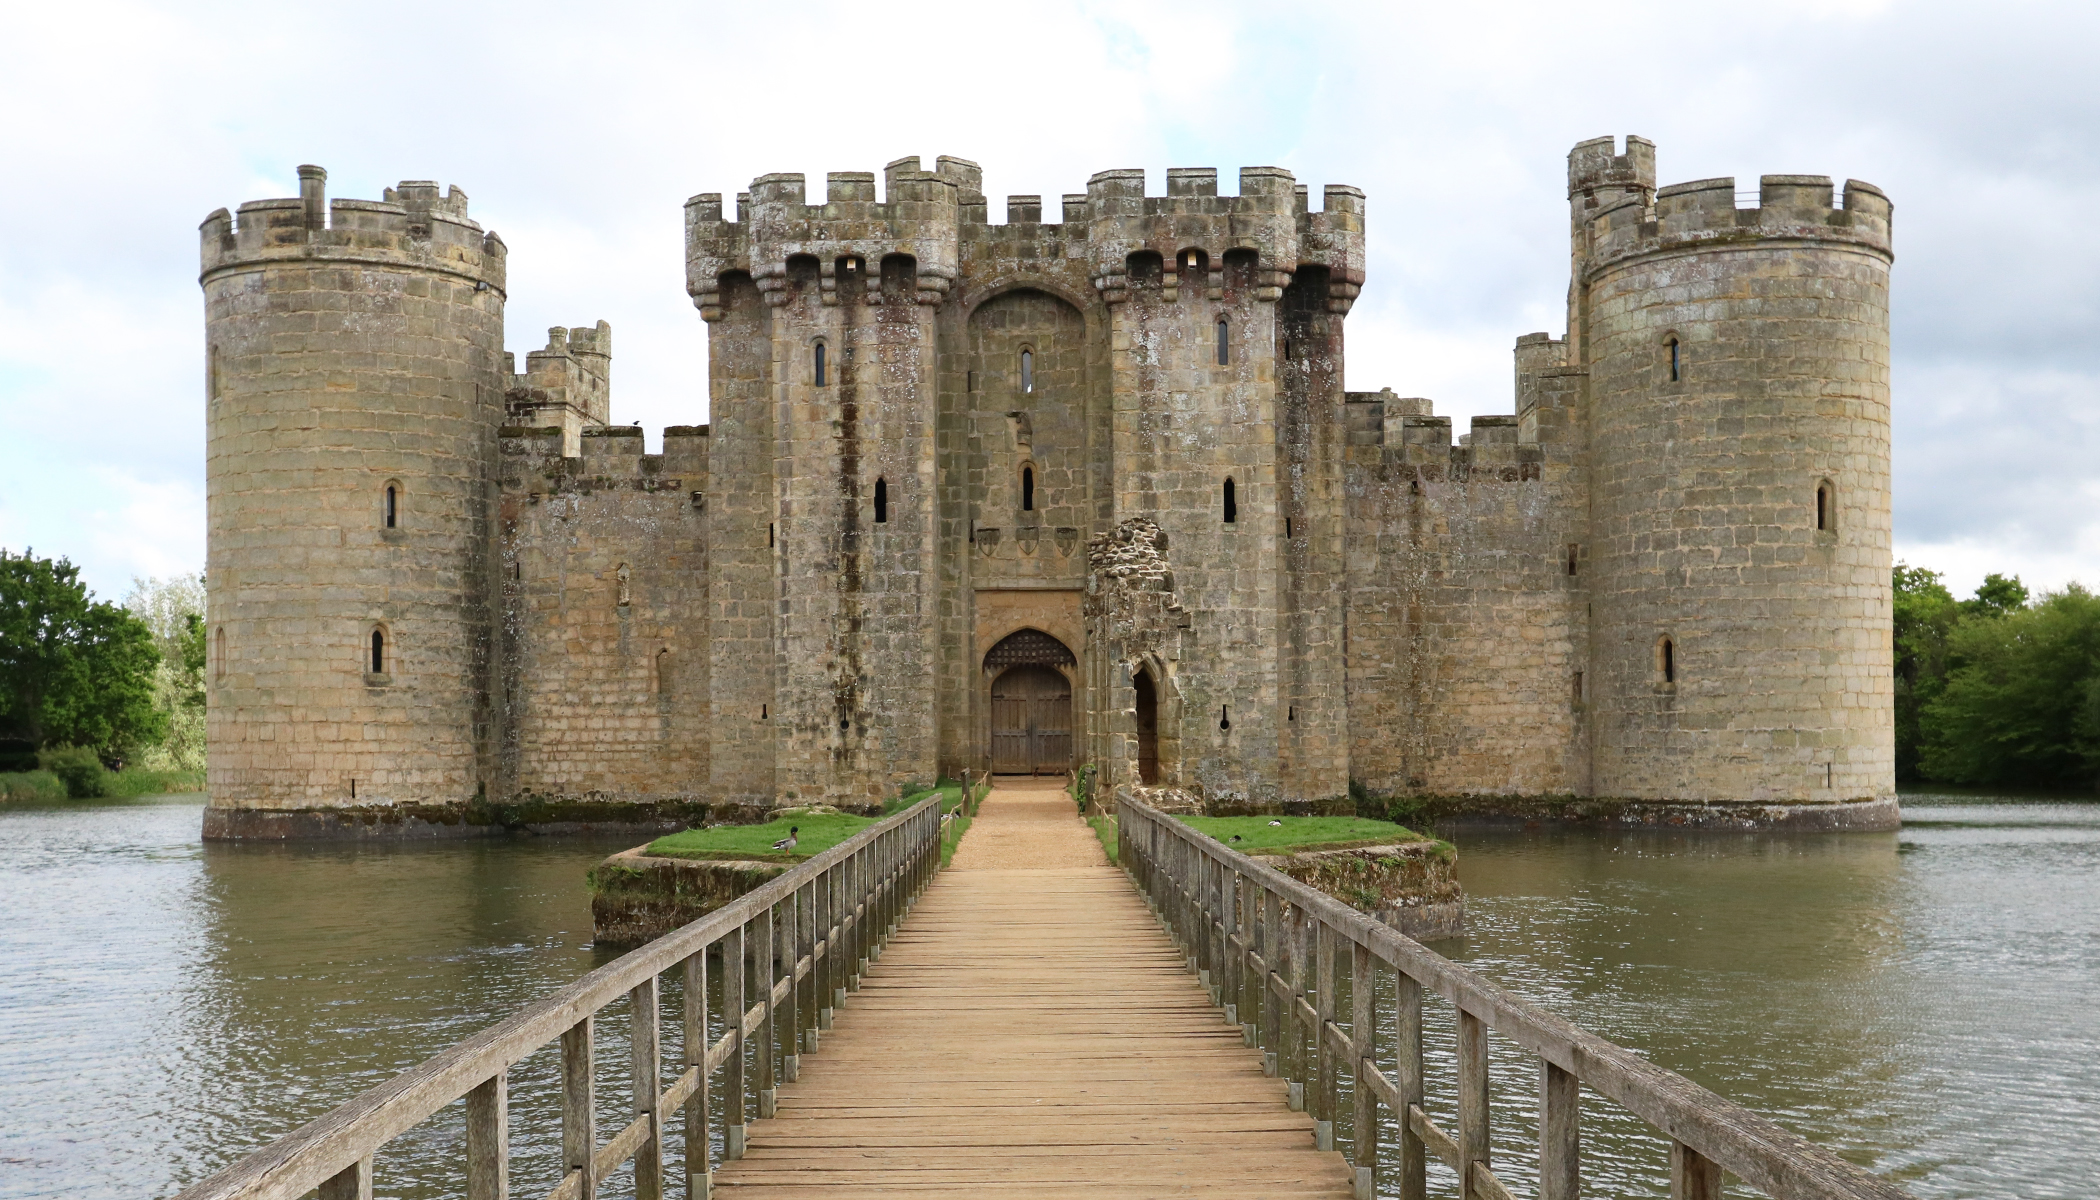 Secrets of Medieval Castles: Why Castle Stairwells Are Built Clockwise–There's a Very Important Reason